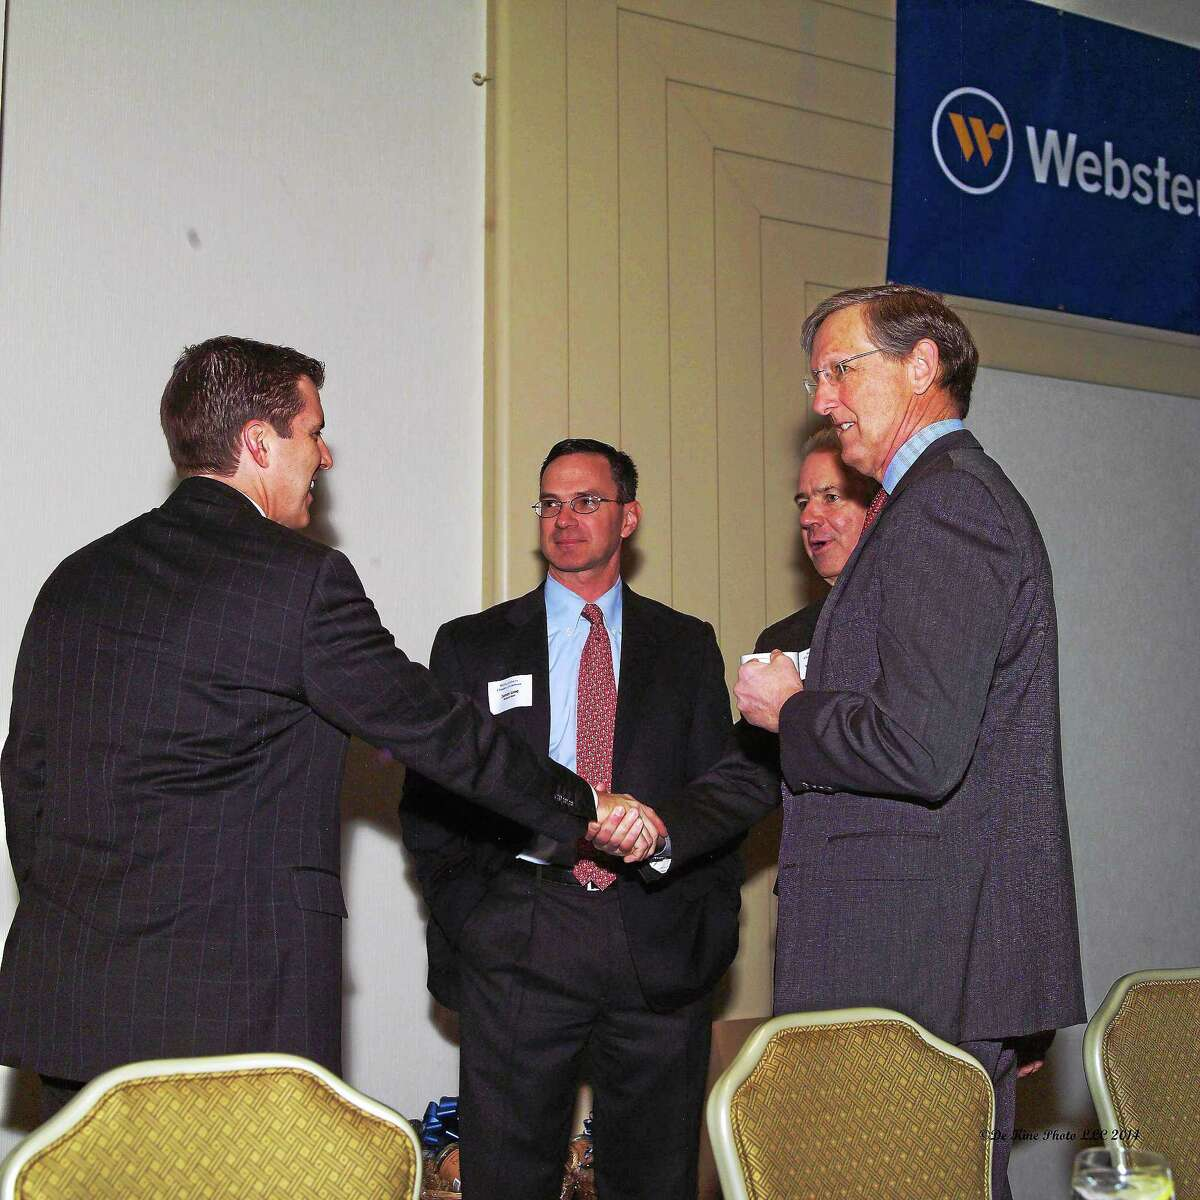 Rece Davis of ESPN, Webster Bank Vice President James Lane, Webster Bank Executive Vice President of Commercial Real Estate Bill Wrang and Webster Financial Corp. President Joe Savage at the Chamber's Member Breakfast on Jan. 27.